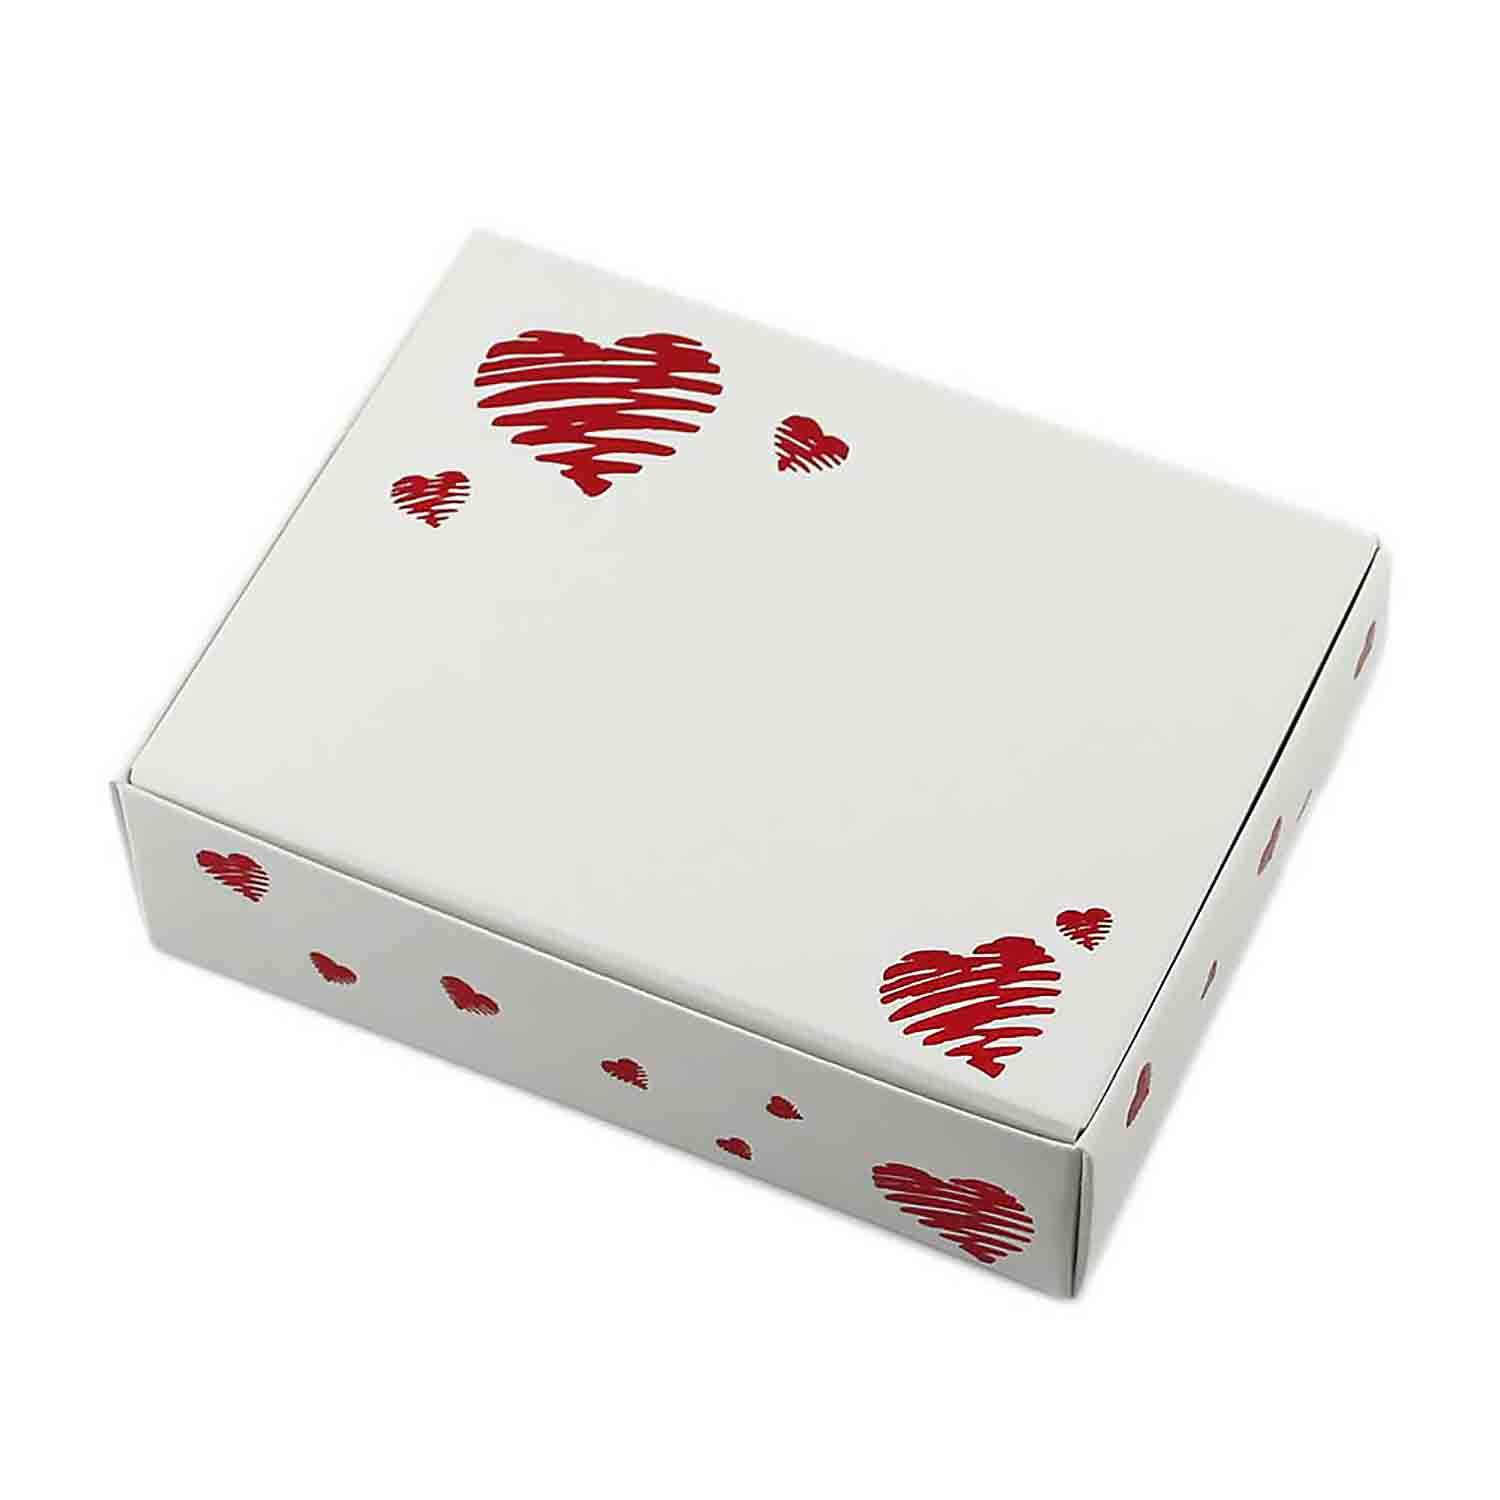 1/4 lb. Heart Print Candy Box